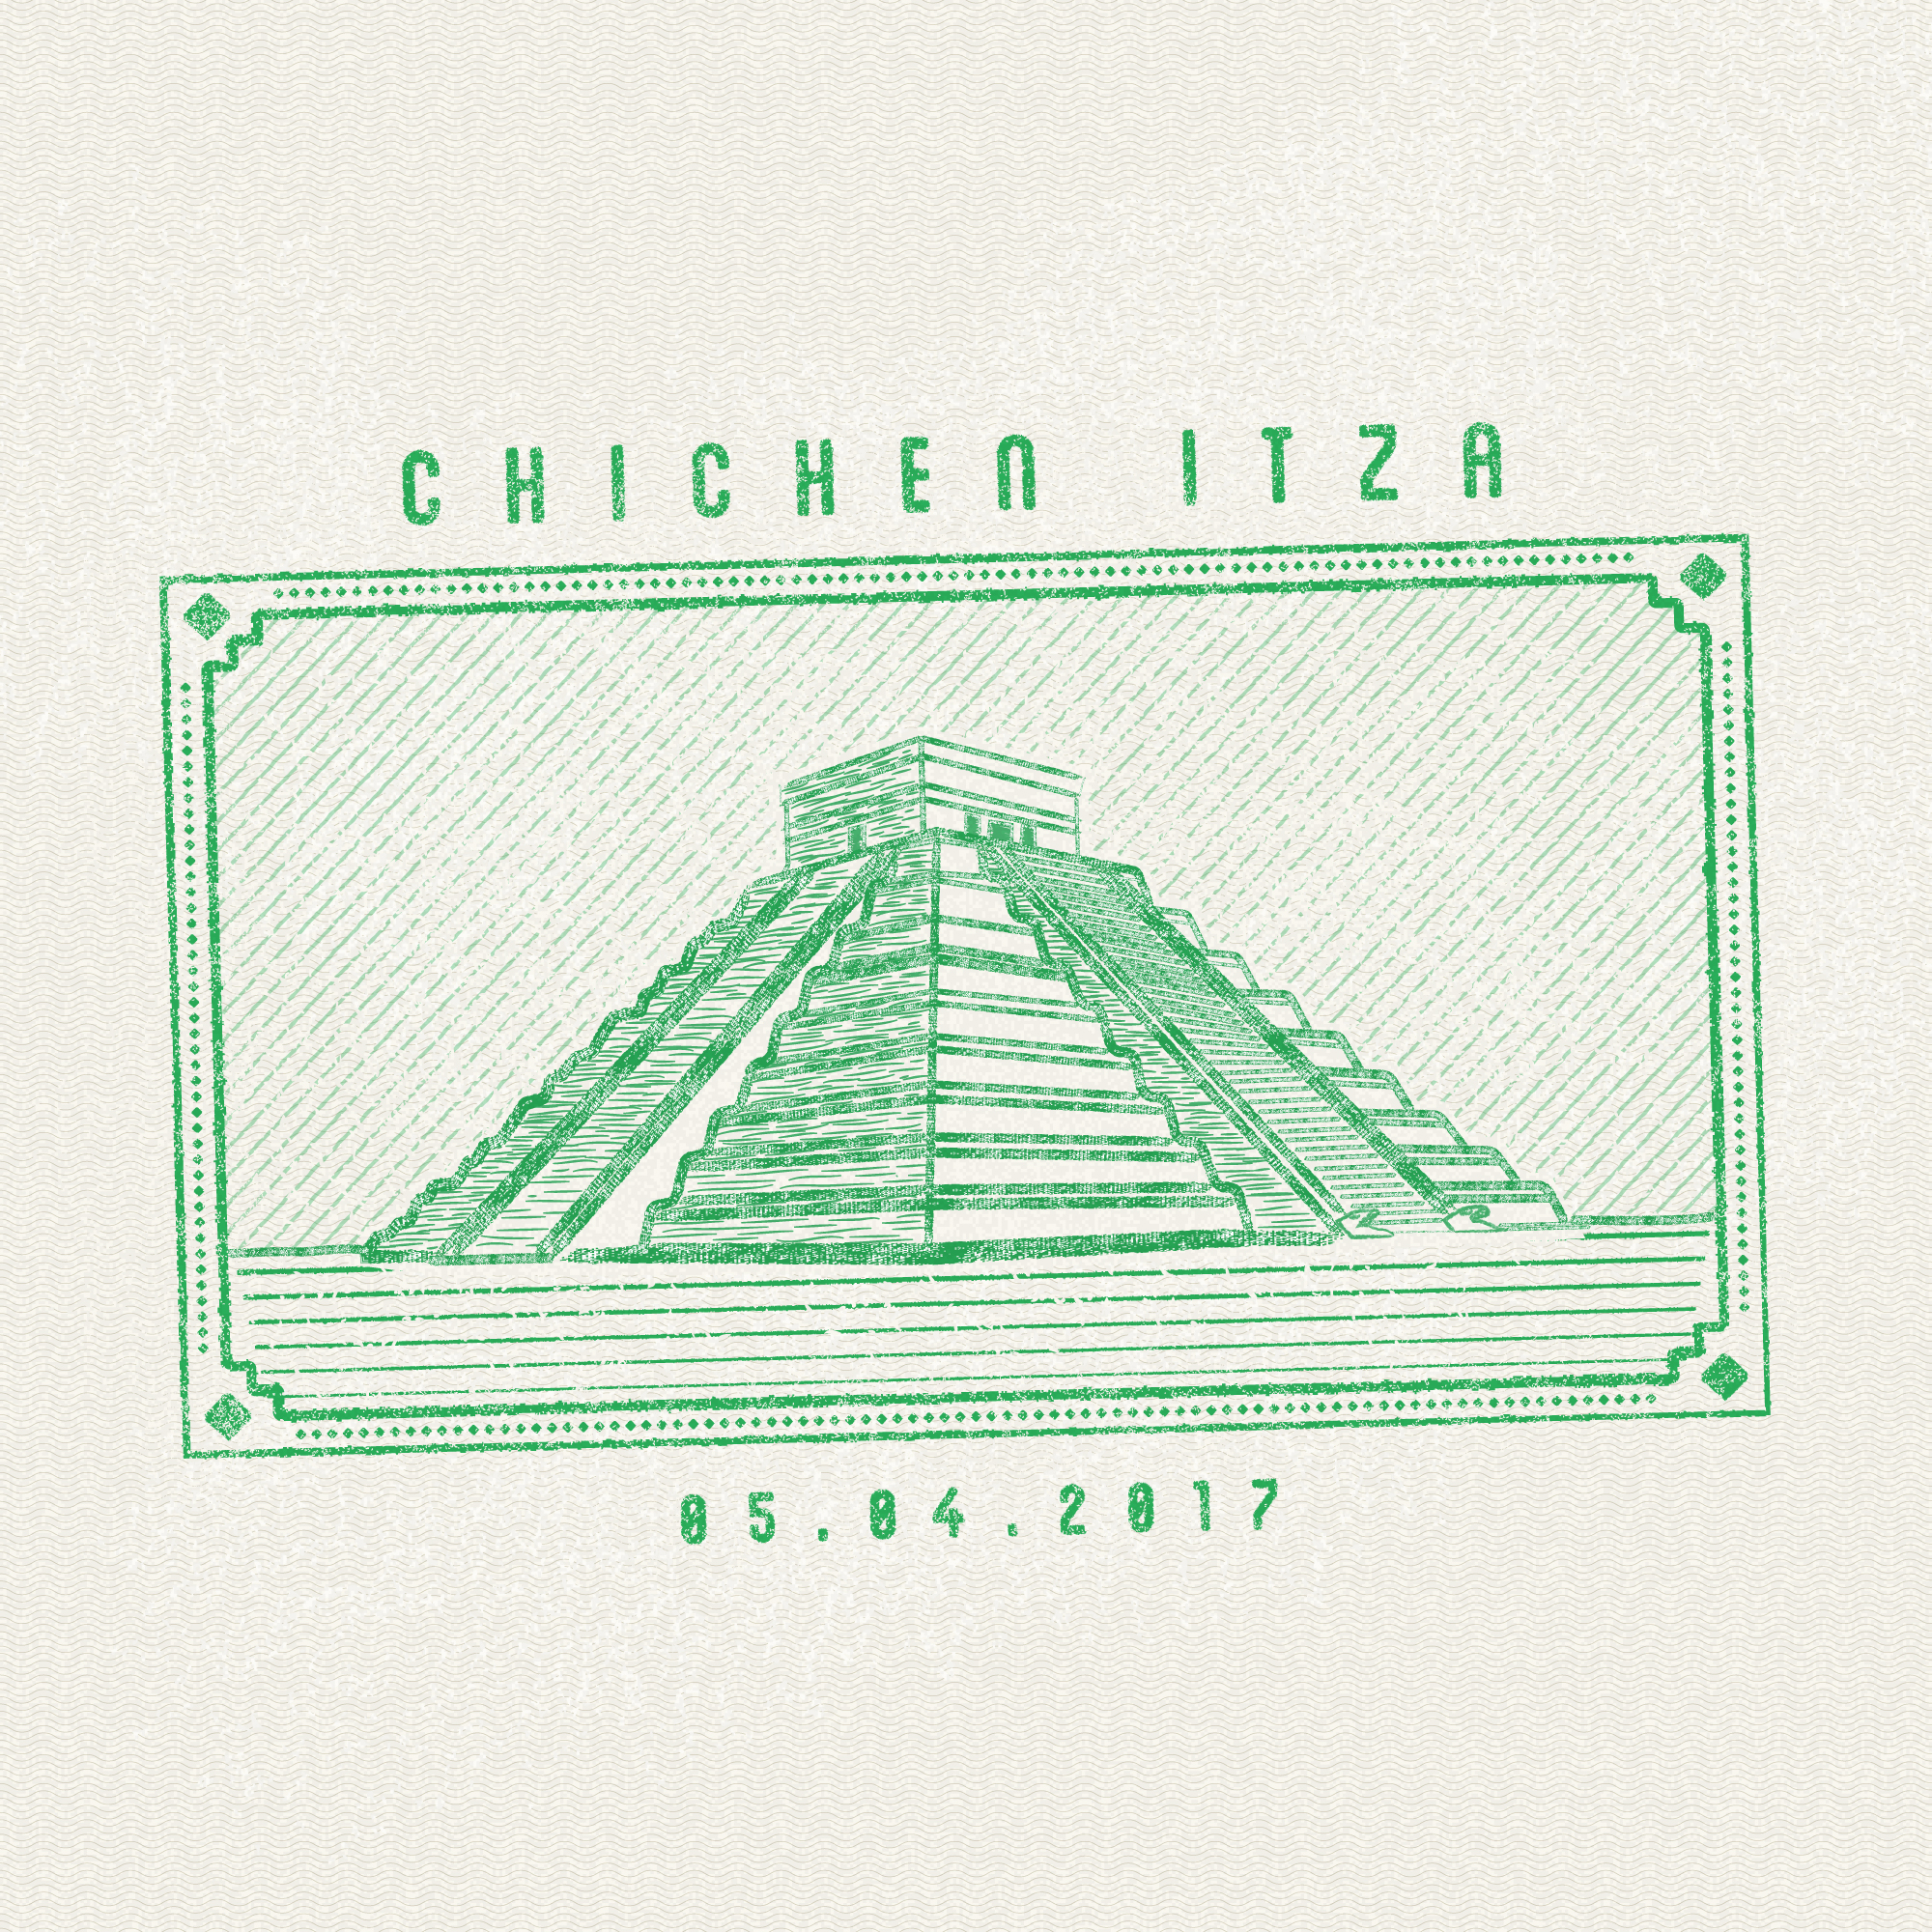 Chichen Itza, Mexico passport stamp